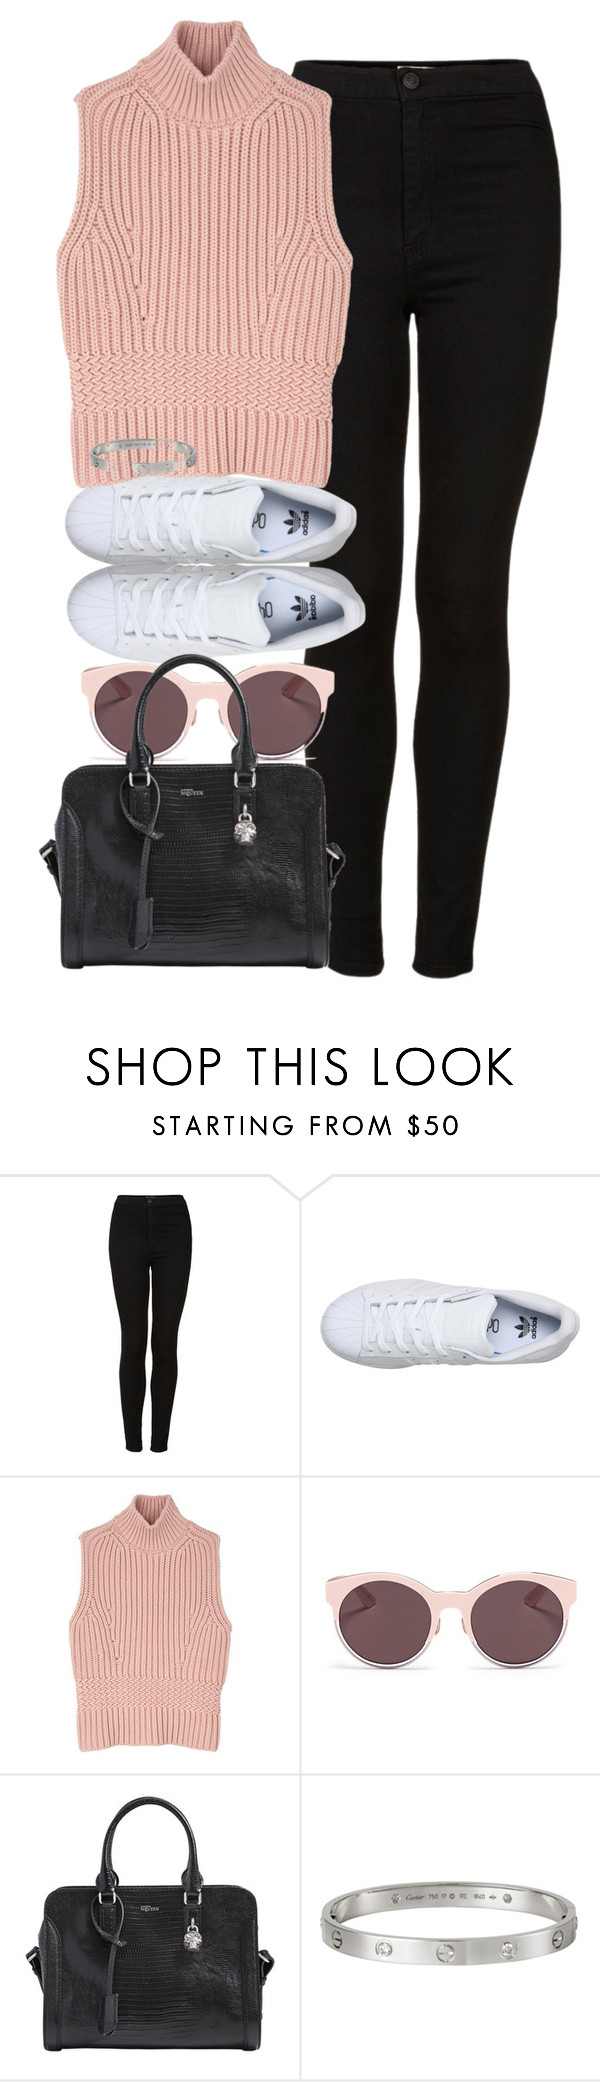 """""""Untitled #444"""" by allysa-bojador on Polyvore featuring Topshop, adidas, Diesel Black Gold, Christian Dior, Alexander McQueen and Cartier"""